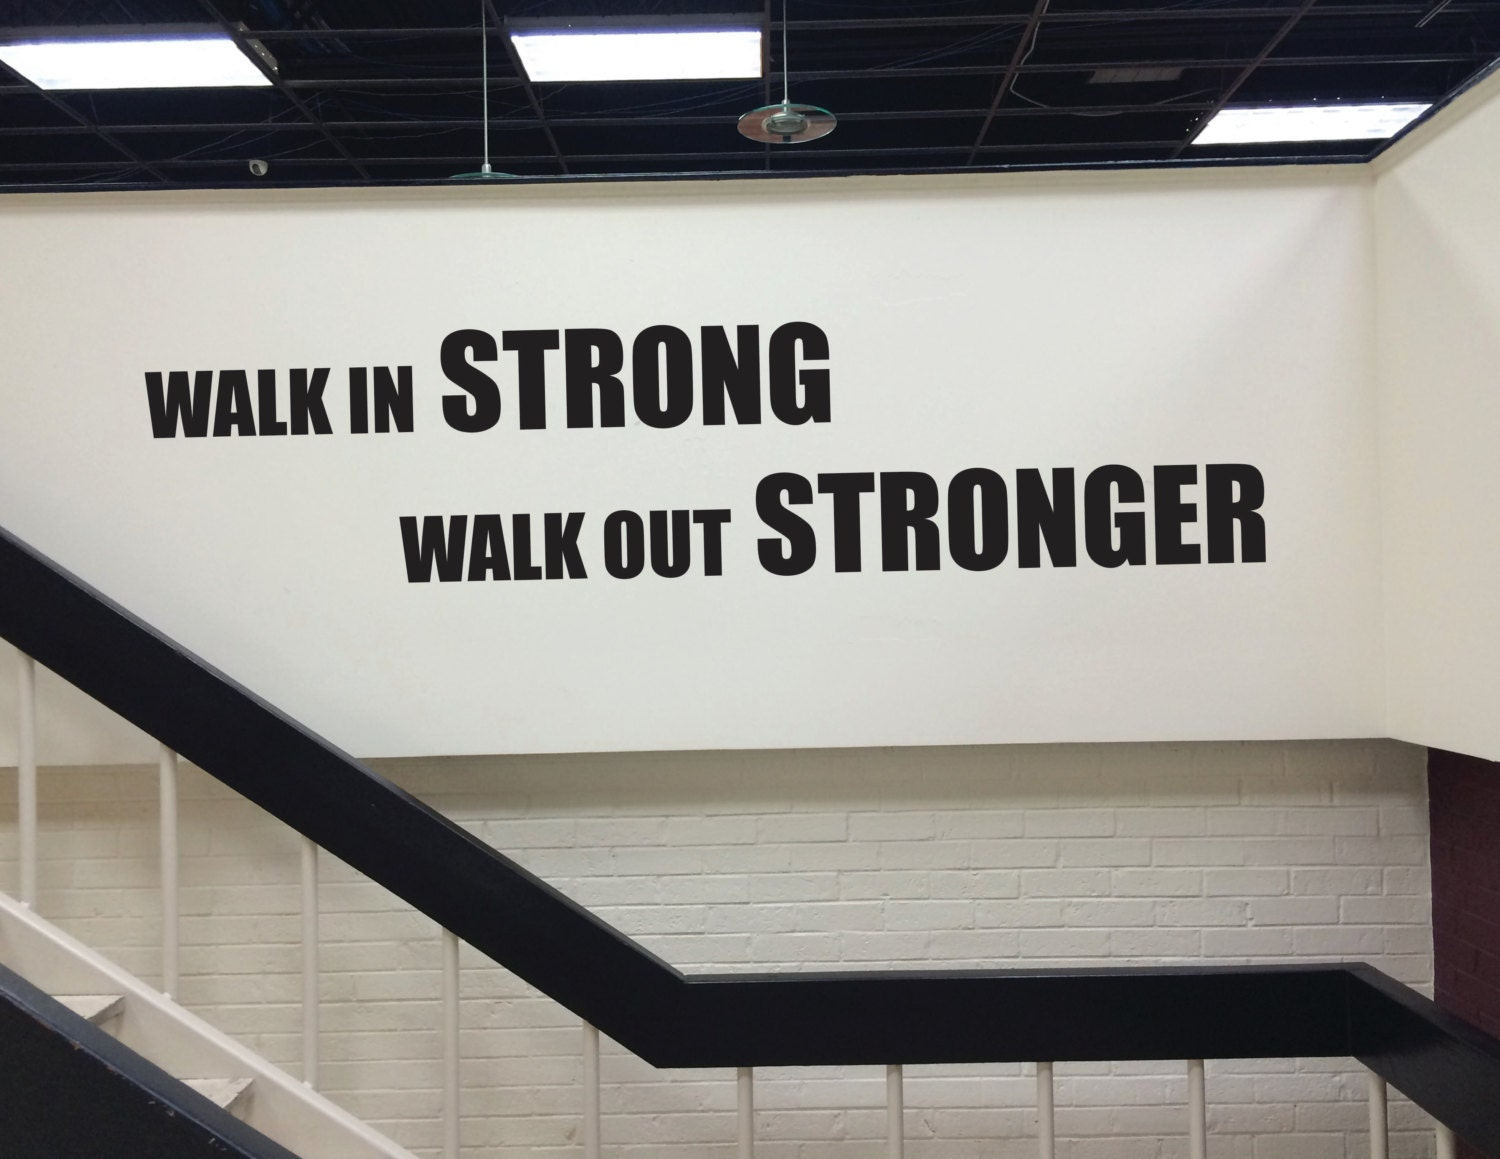 Gym design decor wall quote walk in strong out